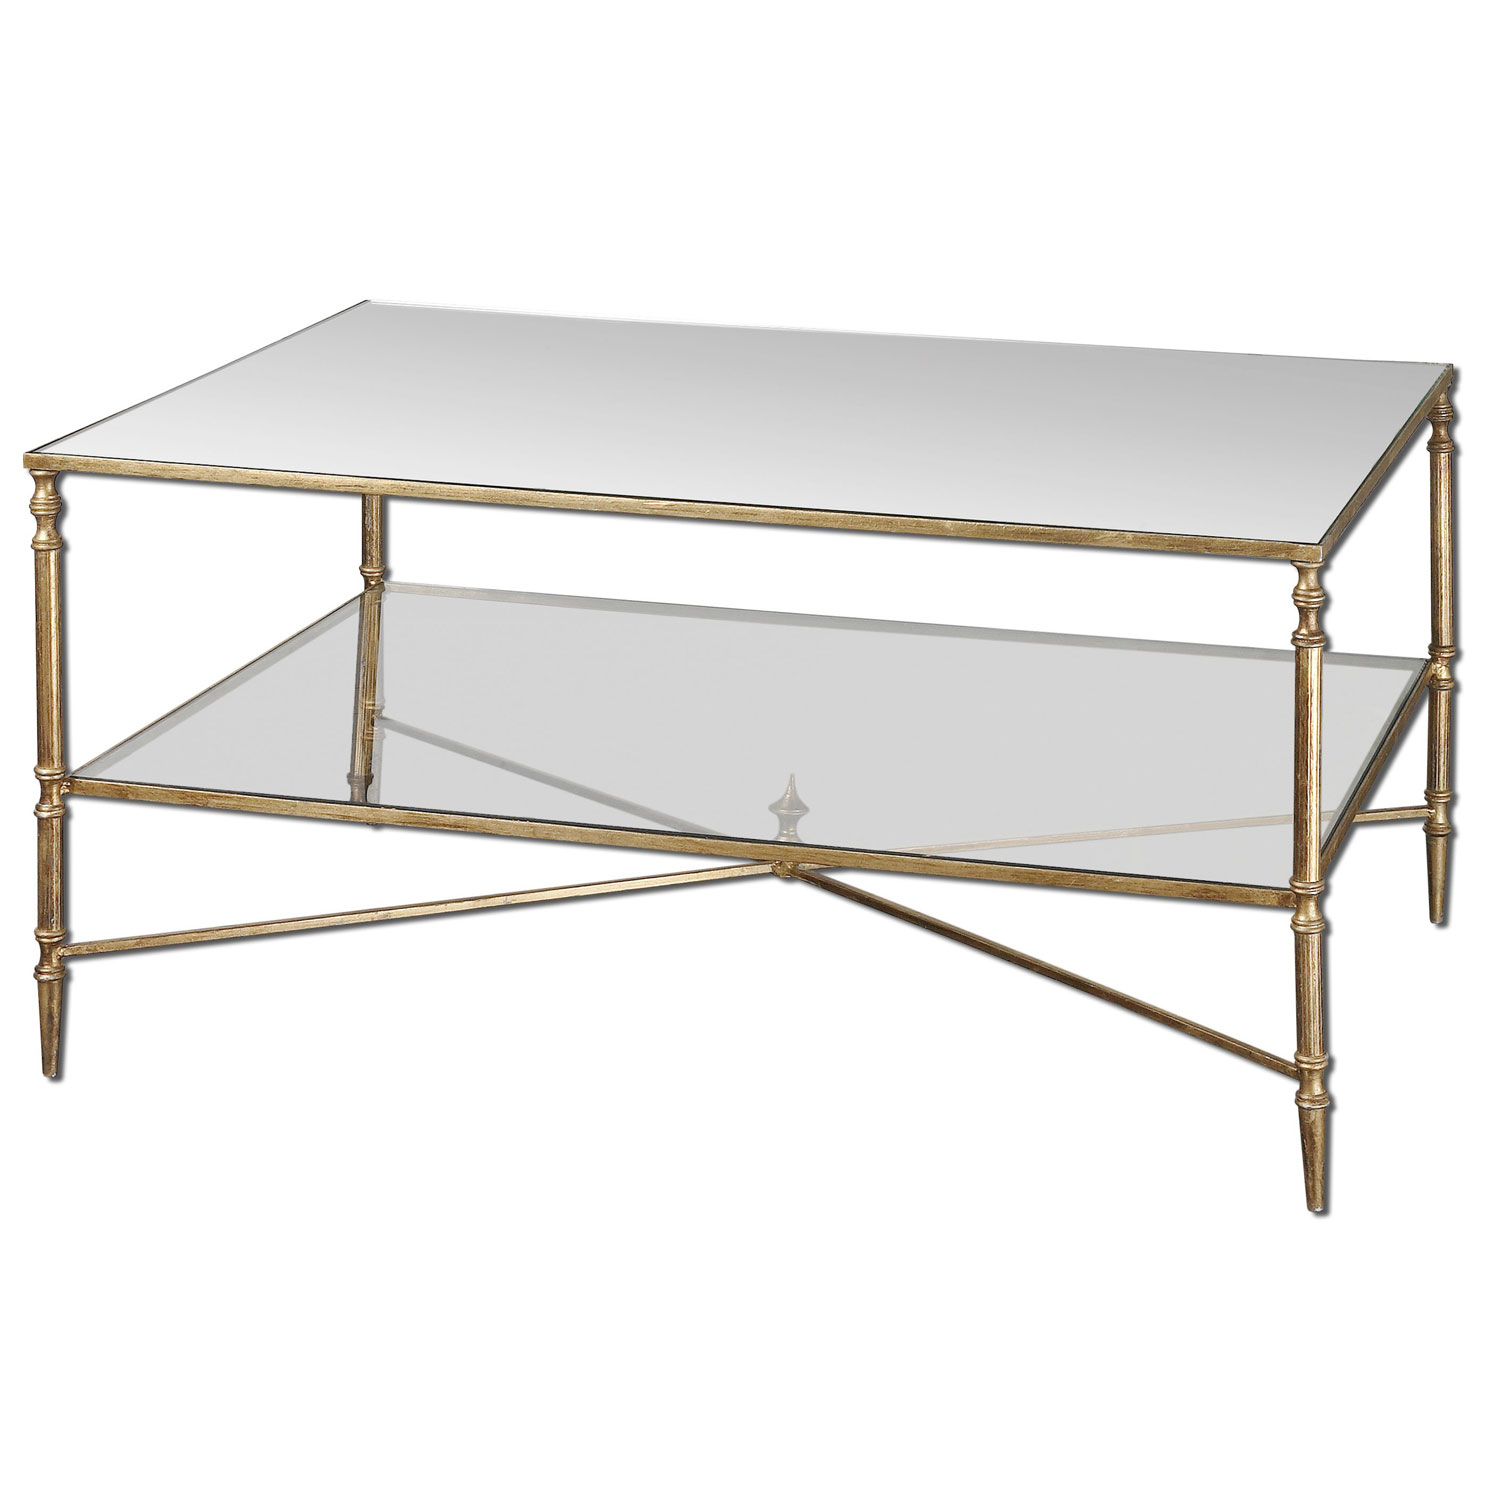 uttermost gold henzler coffee table bellacor round accent hover zoom modern mirrored wicker chair mission style lighting granite console ikea living room ideas west elm free